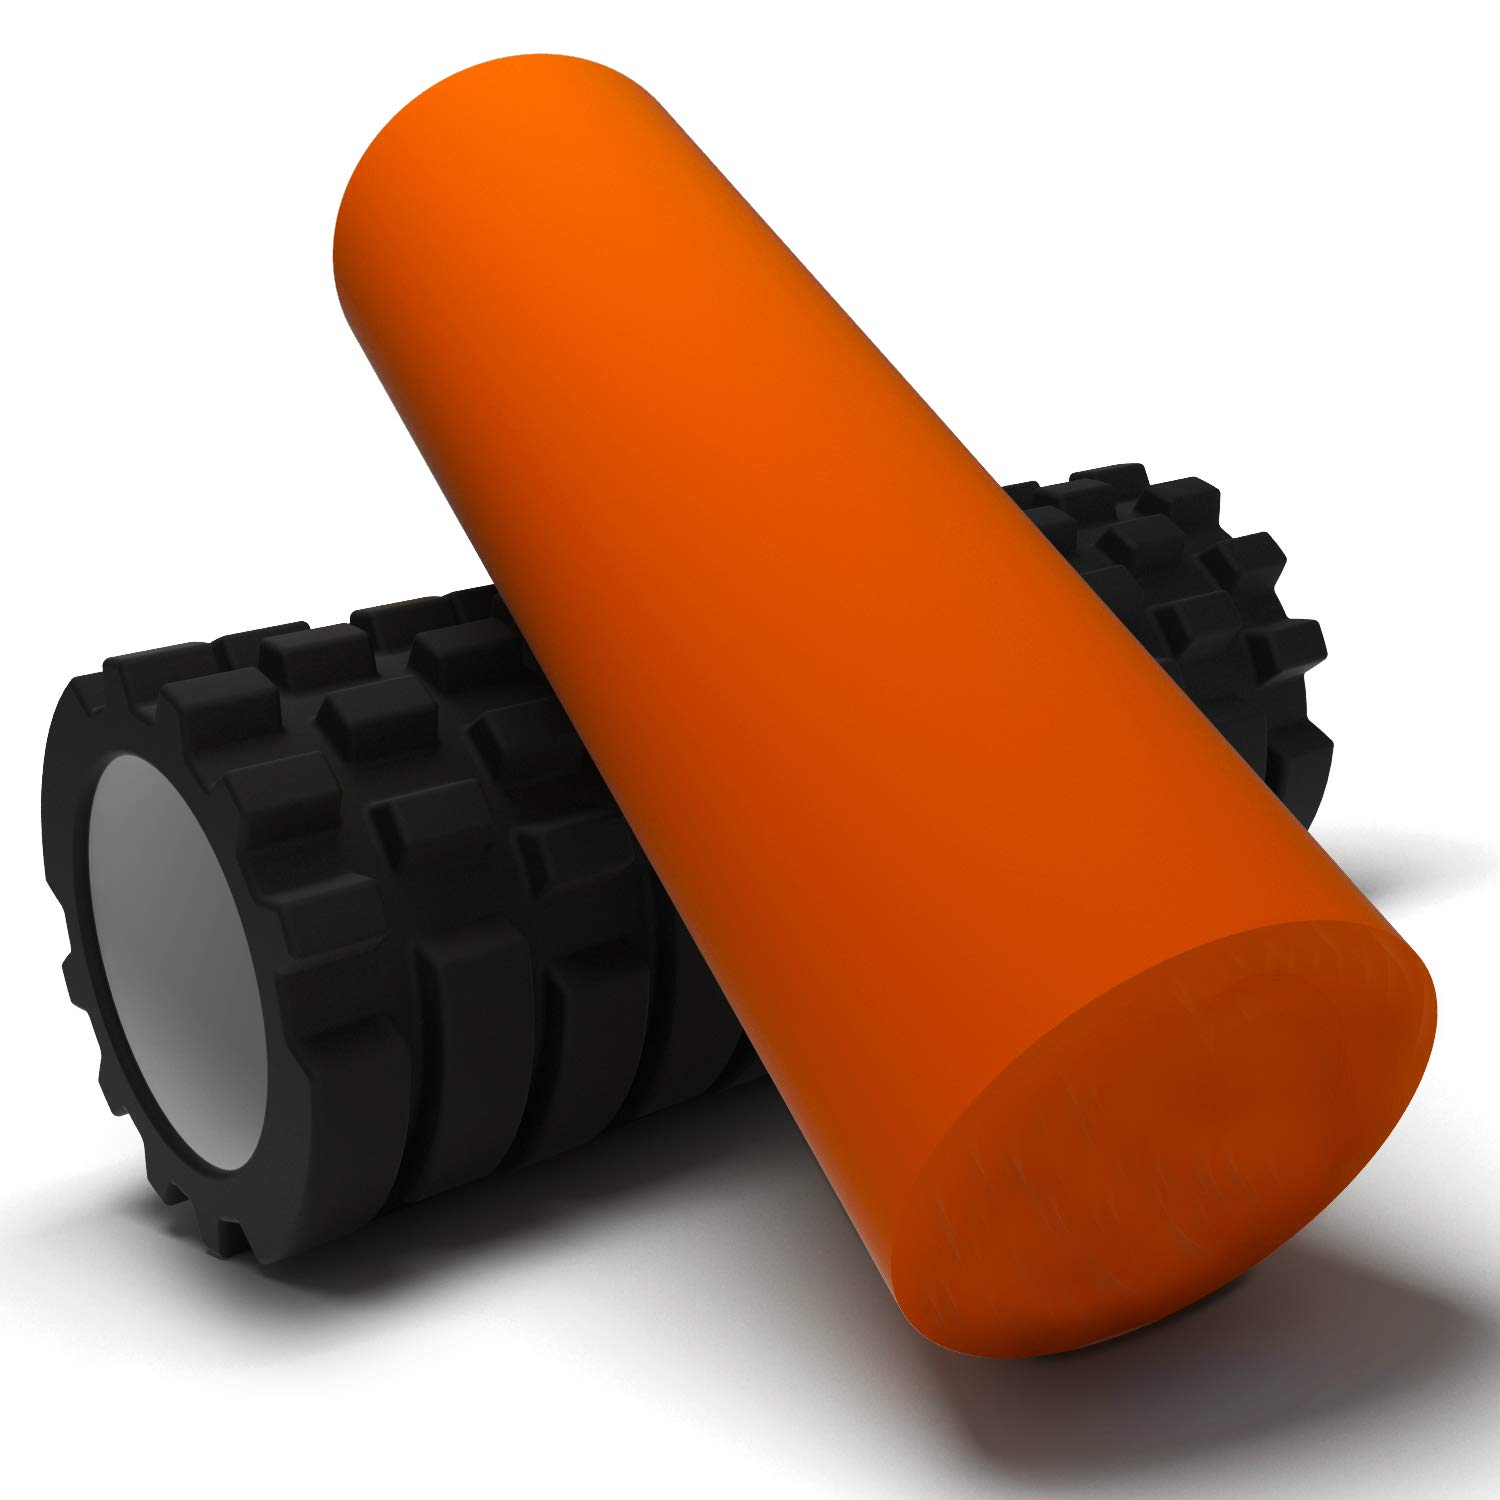 Exercise Foam Roller - Professional Grade, High-Density Incorporates Unique 2 in 1 Trigger-Point Design - Massages, Soothes, Refreshes Invigorates - Fits Conveniently Inside Your Sports Bag